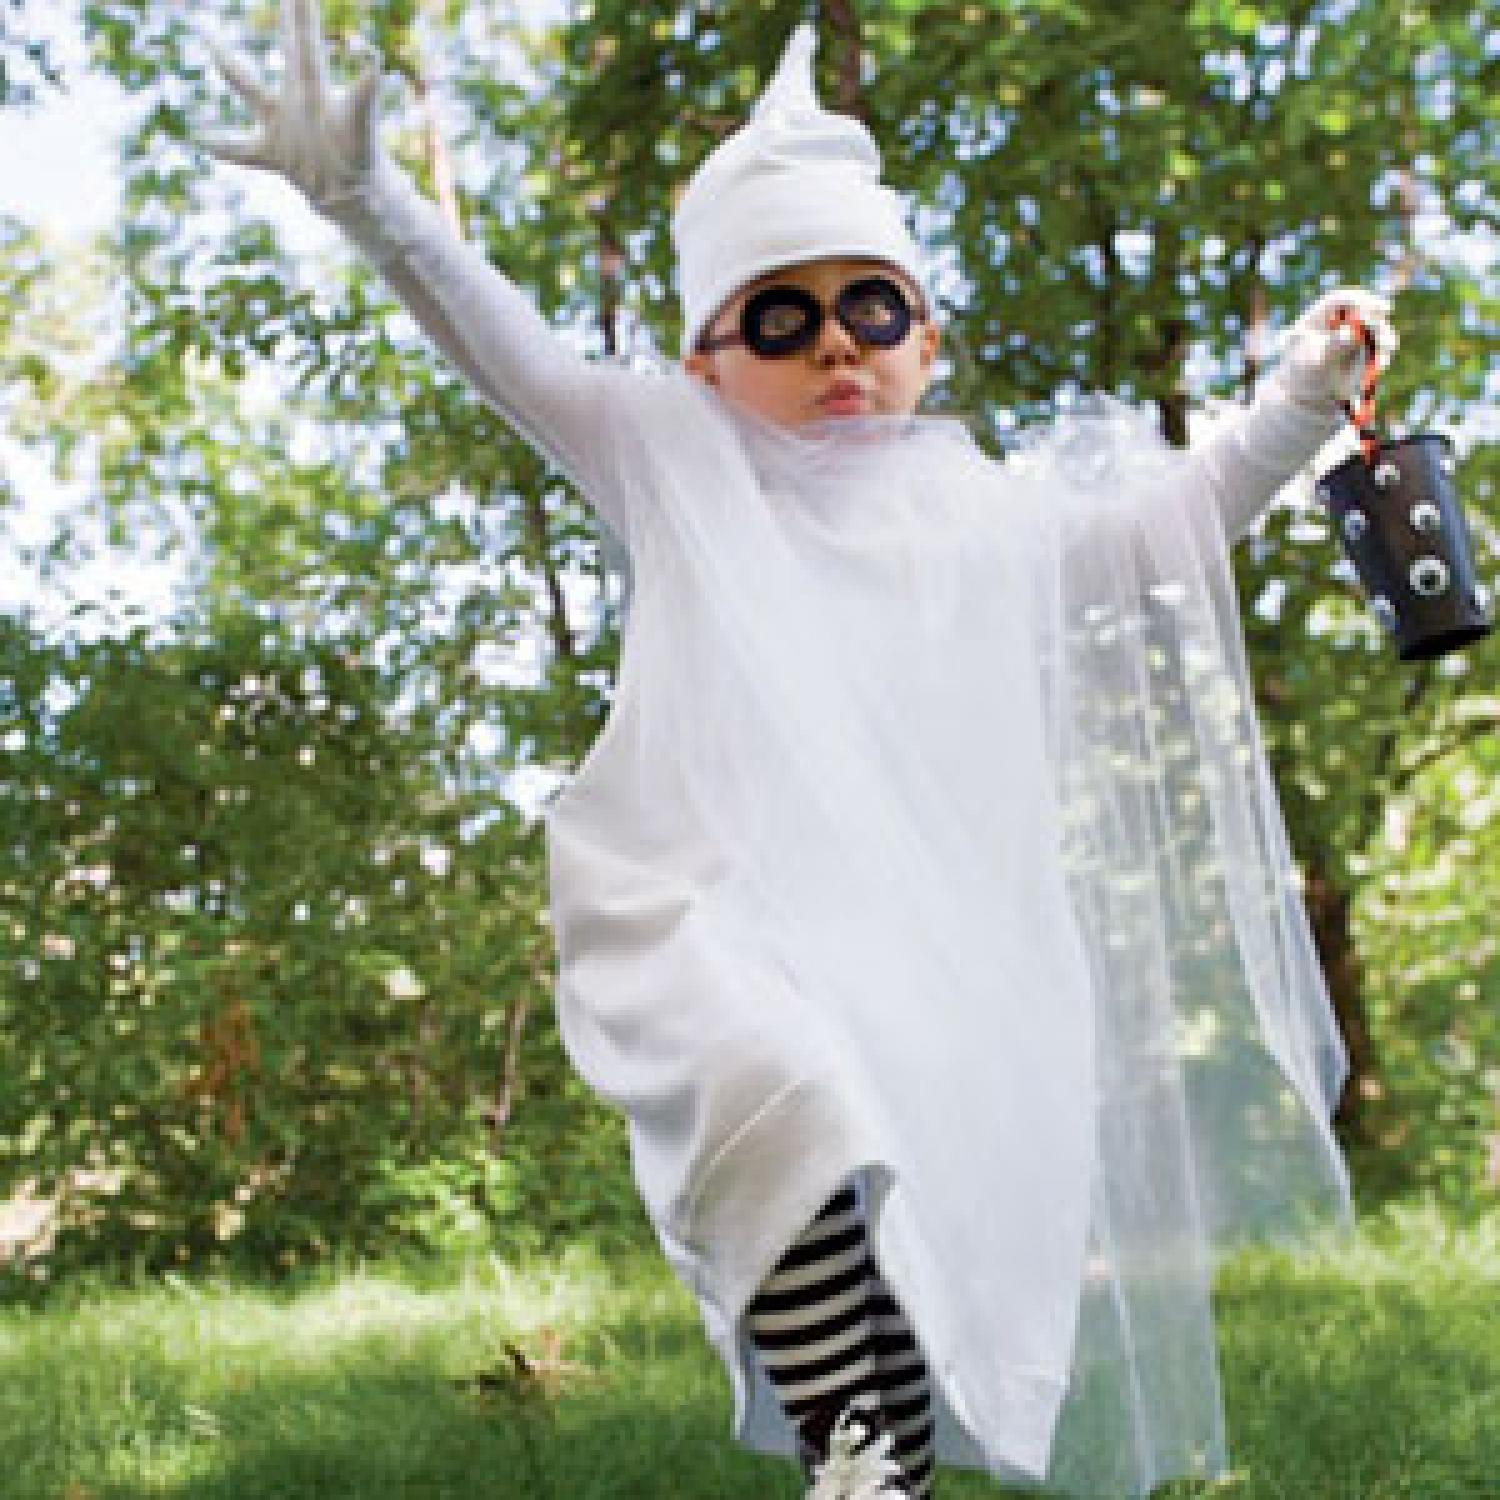 & Boo-tiful Ghost Halloween Costume | Parenting